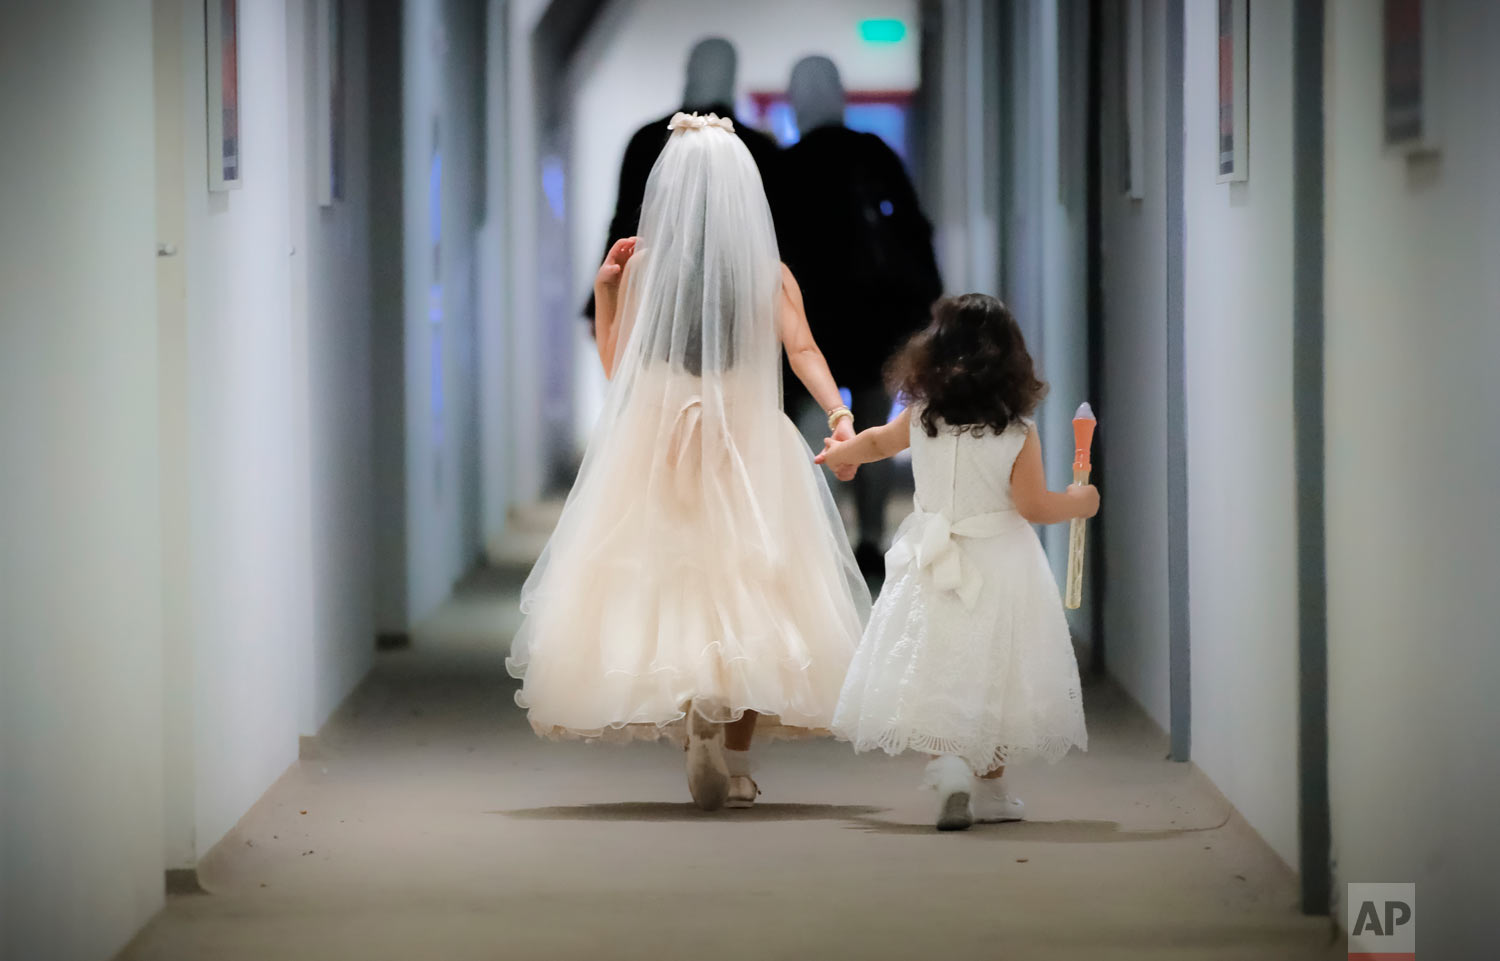 Girls hold hands as they arrive for Eid al-Adha prayers, held in a sports hall in Bucharest, Romania, Tuesday, Aug. 21, 2018. Muslims worldwide are celebrating Eid al-Adha, or the Feast of the Sacrifice, which commemorates the biblical story of Abraham and his readiness to sacrifice his son as an act of obedience to God, by sacrificial killing of sheep, goats, cows or camels. (AP Photo/Vadim Ghirda)